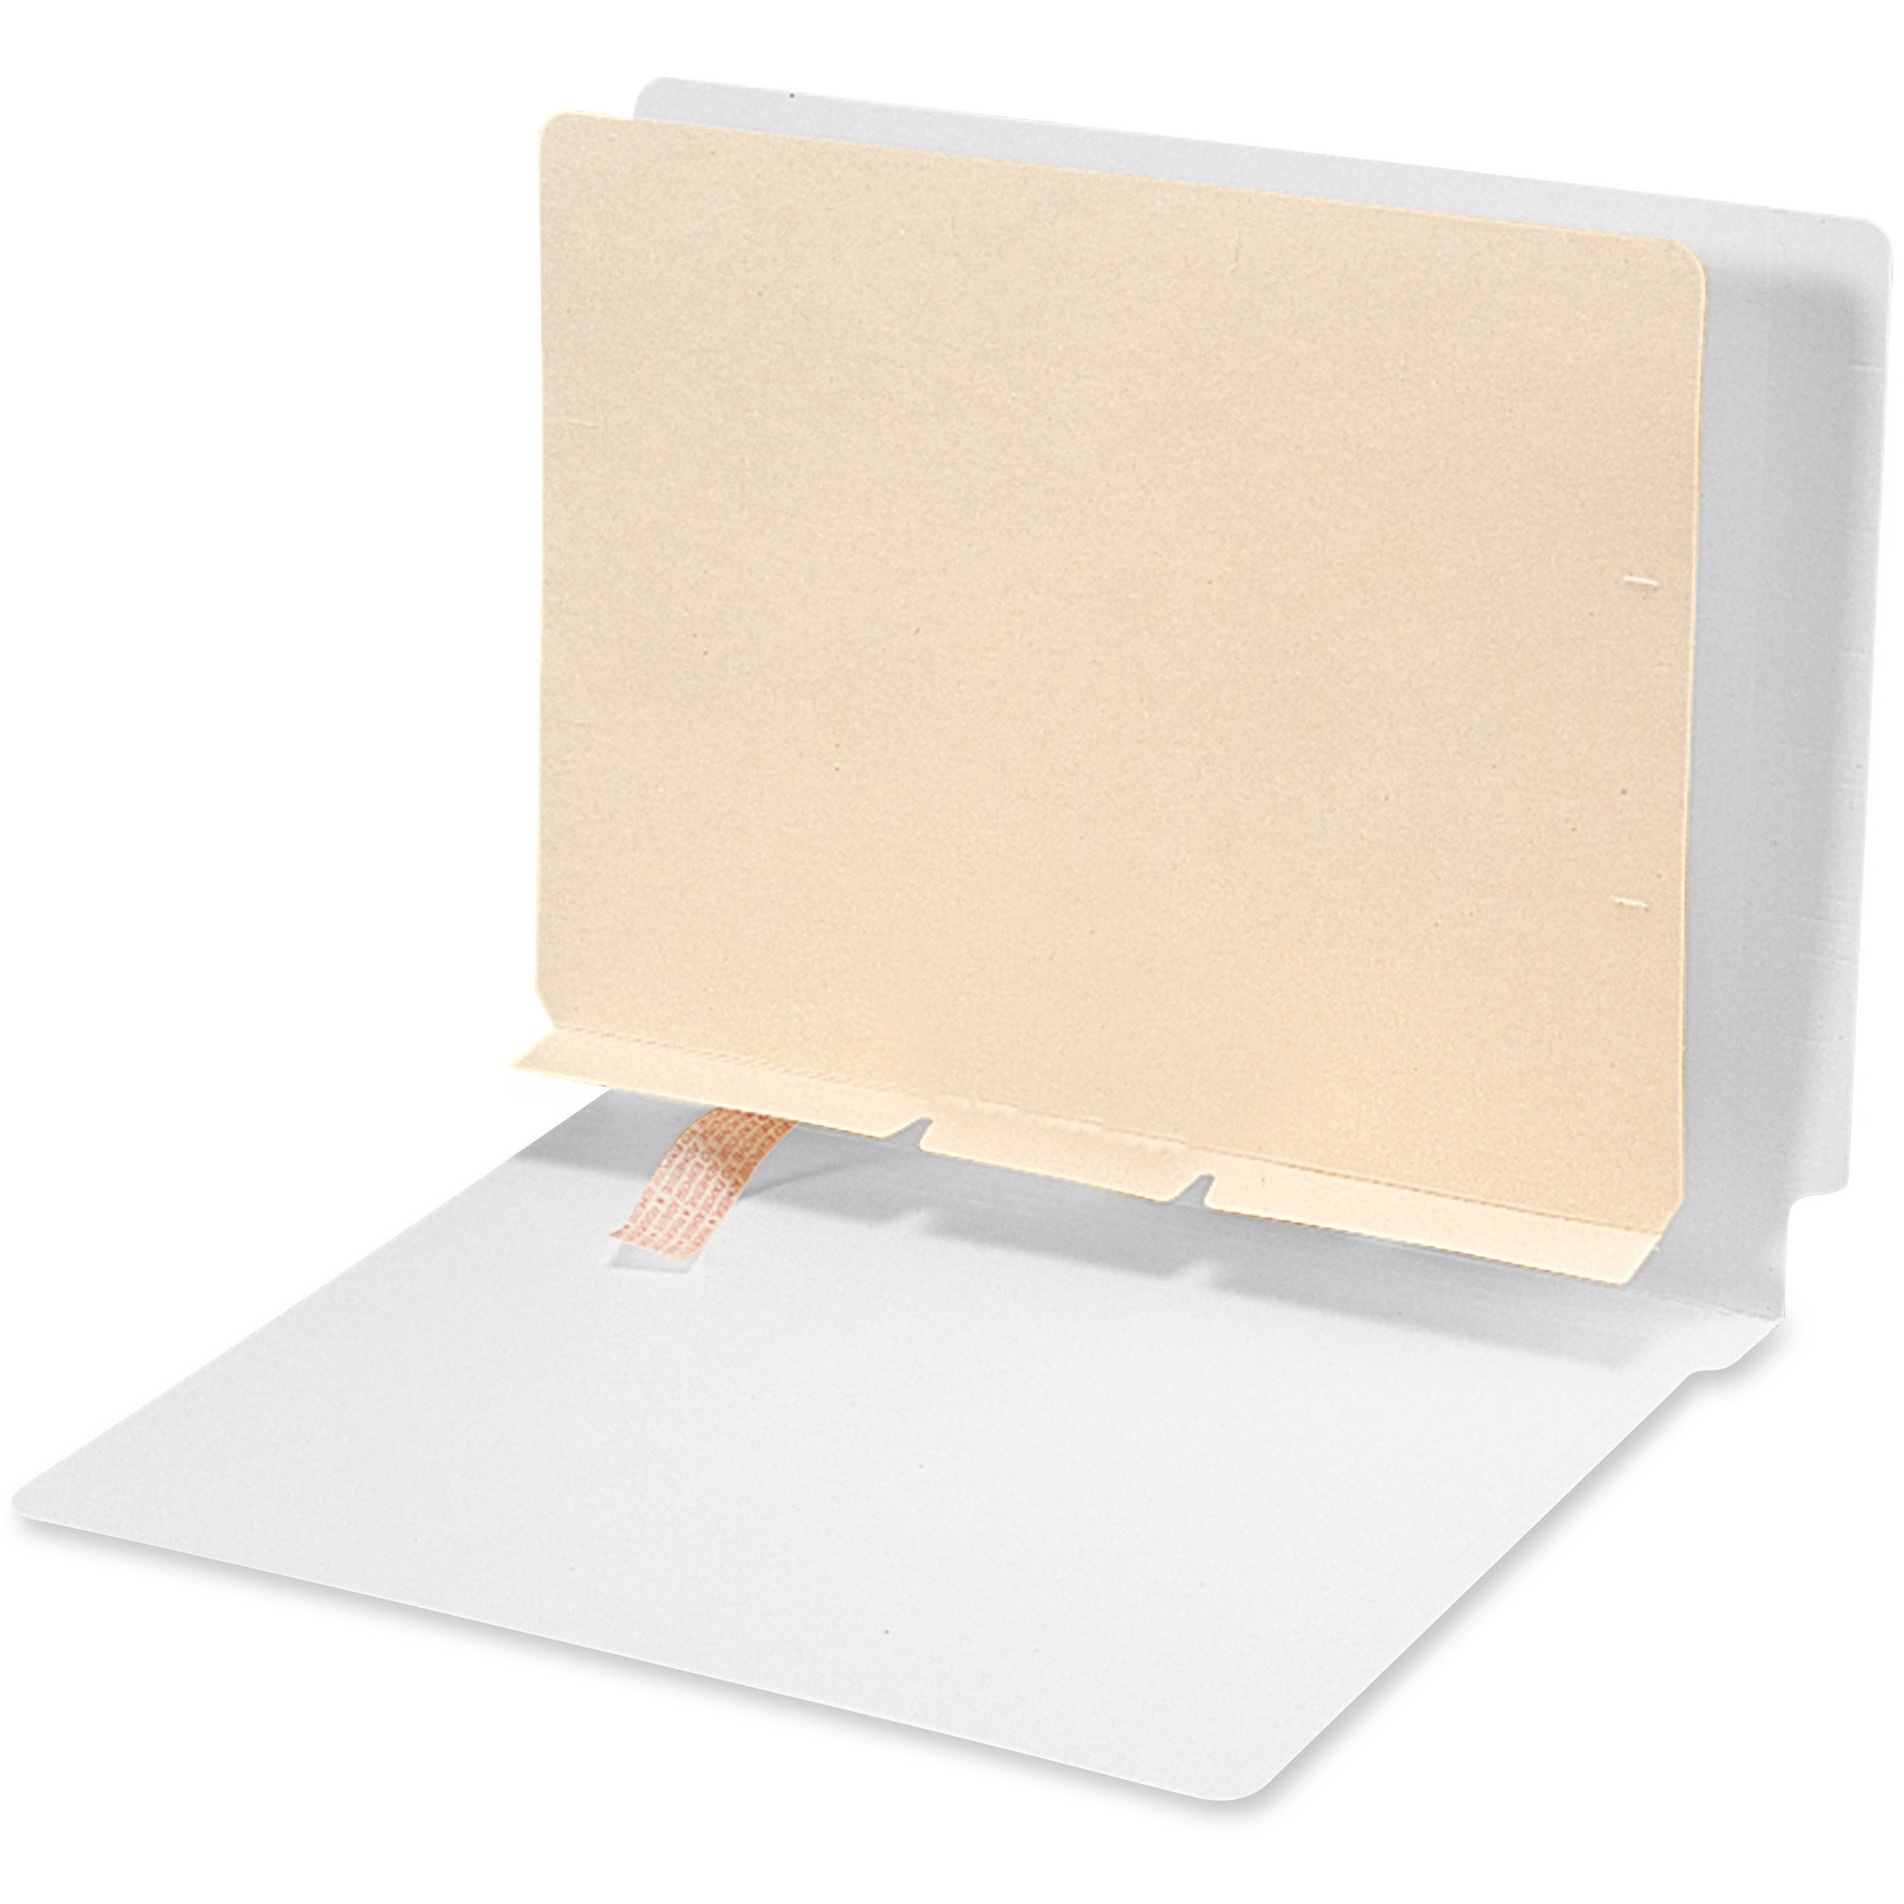 Manila Self-Adhesive Folder Dividers w/Prepunched Slits, 2-Sect, Letter, 100/Box